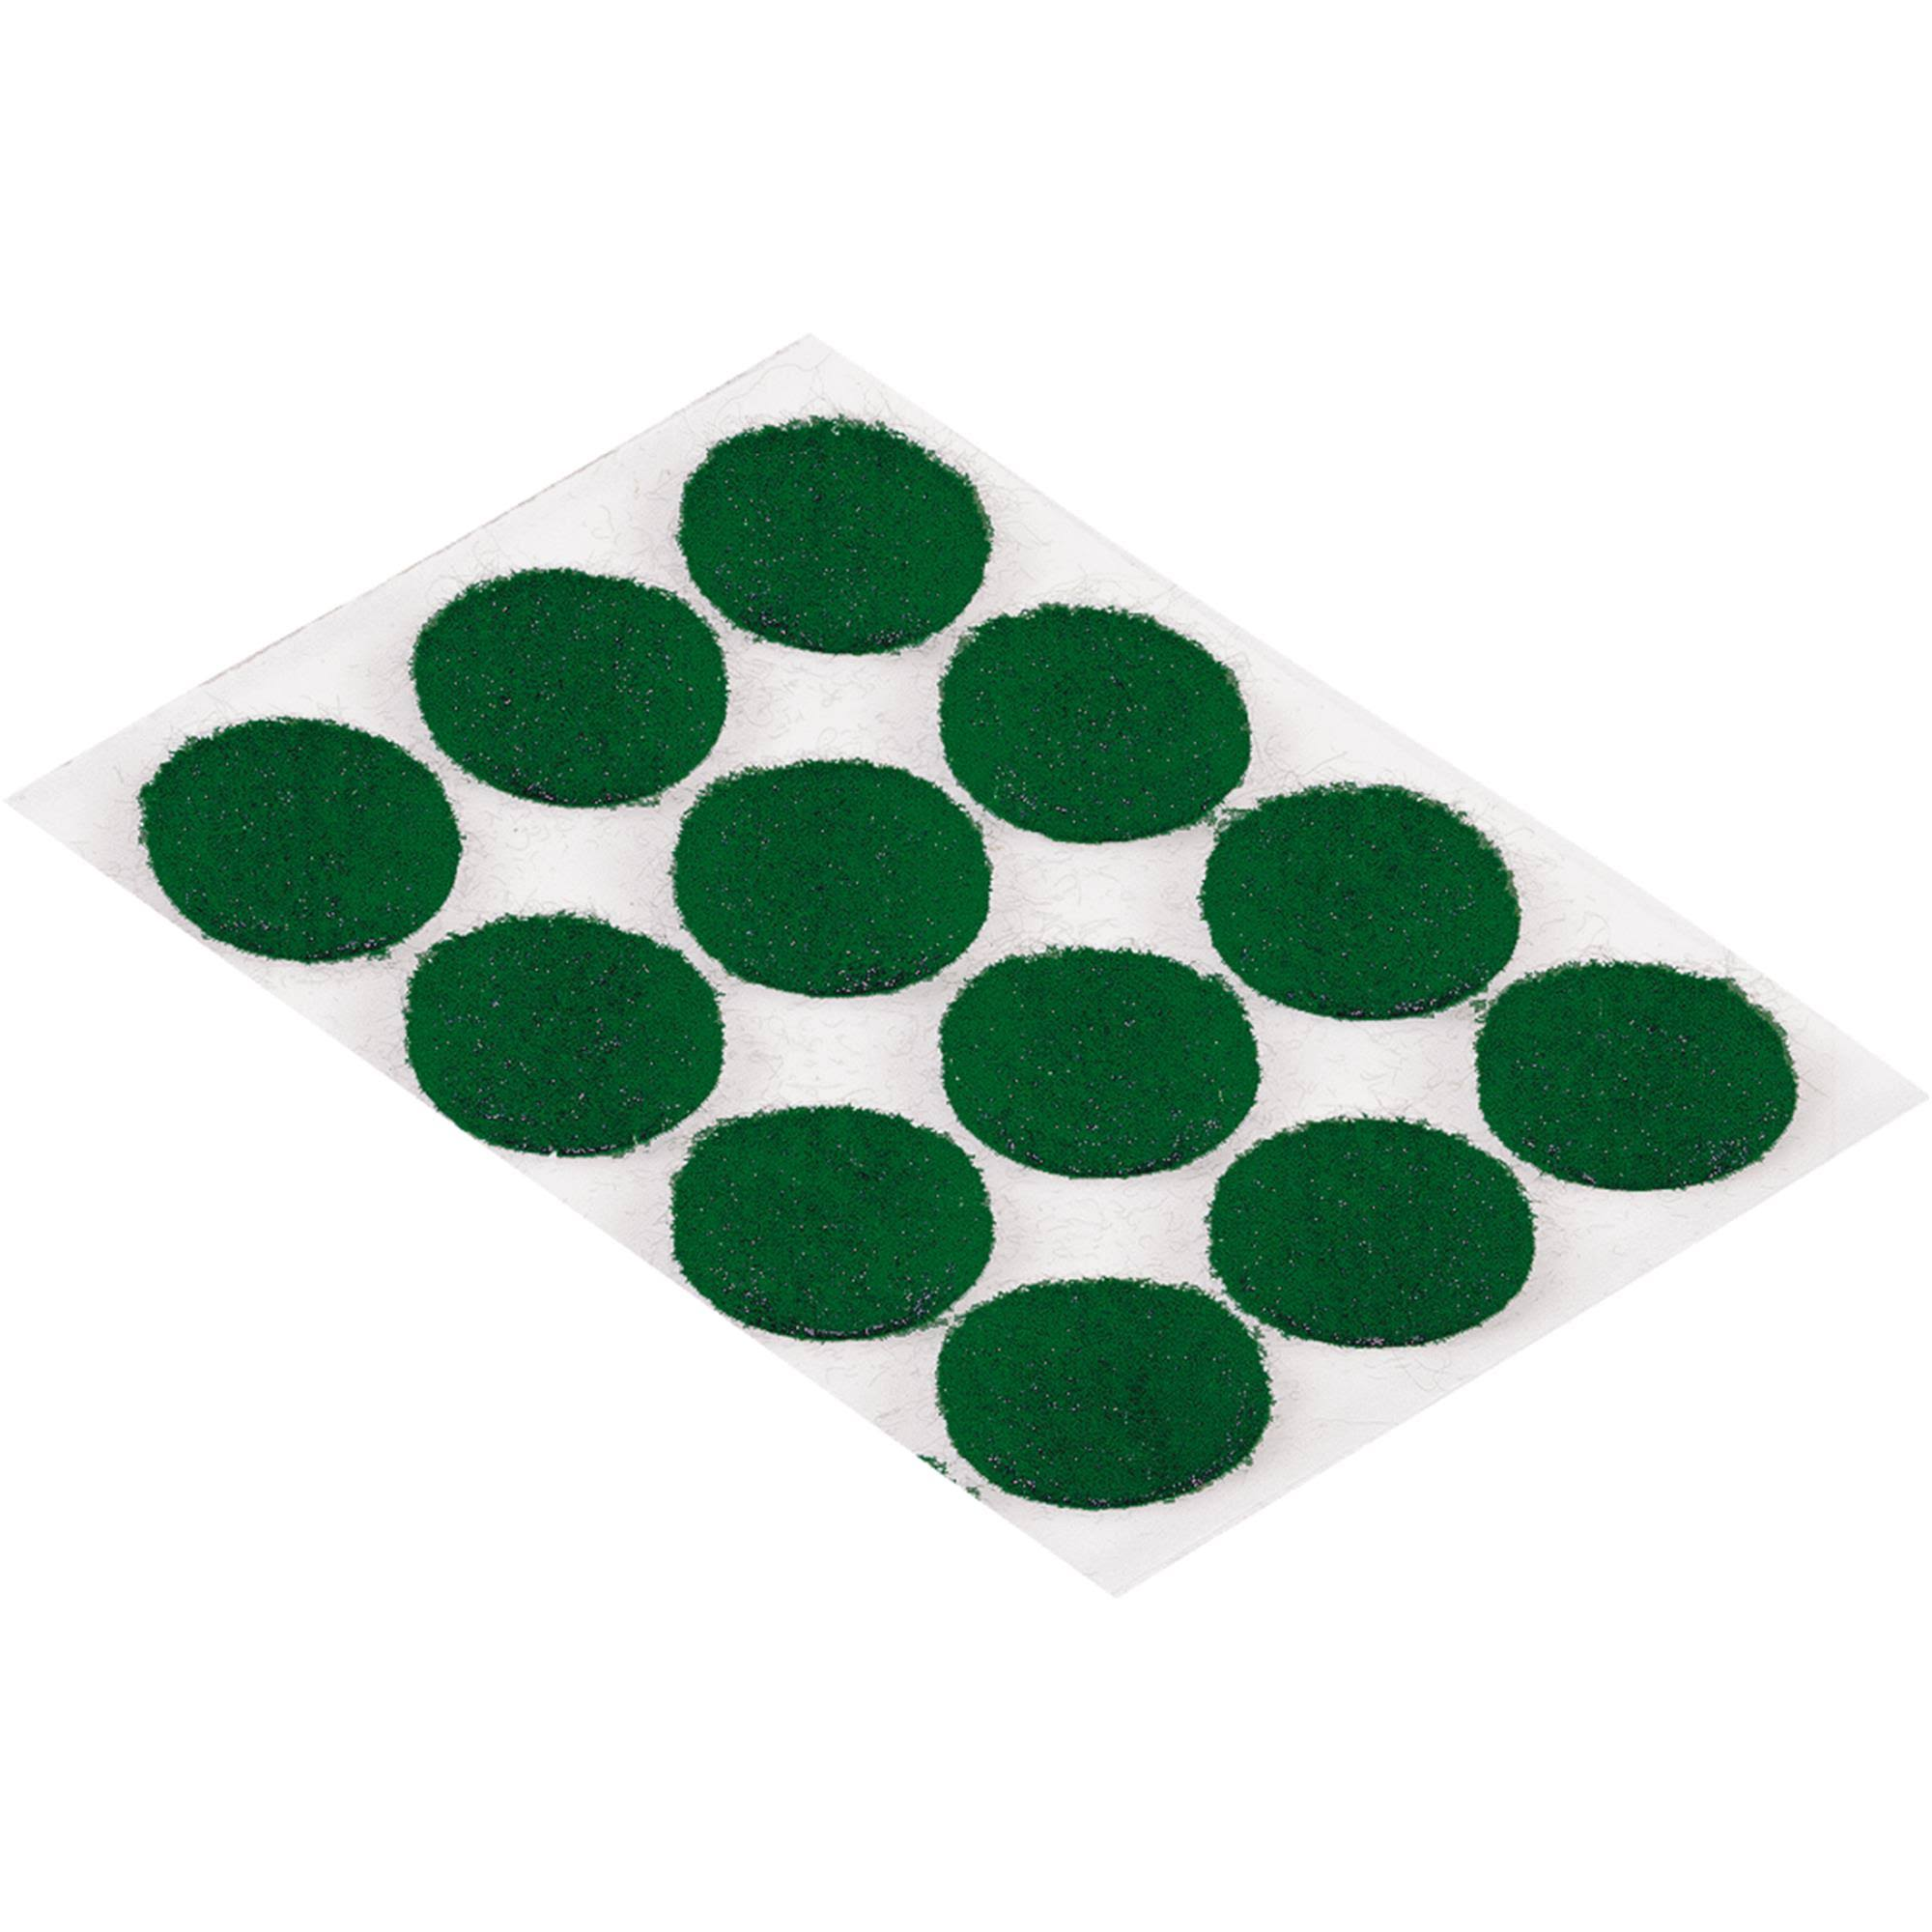 Shepherd Hardware Felt Pad - Green, 3/8""